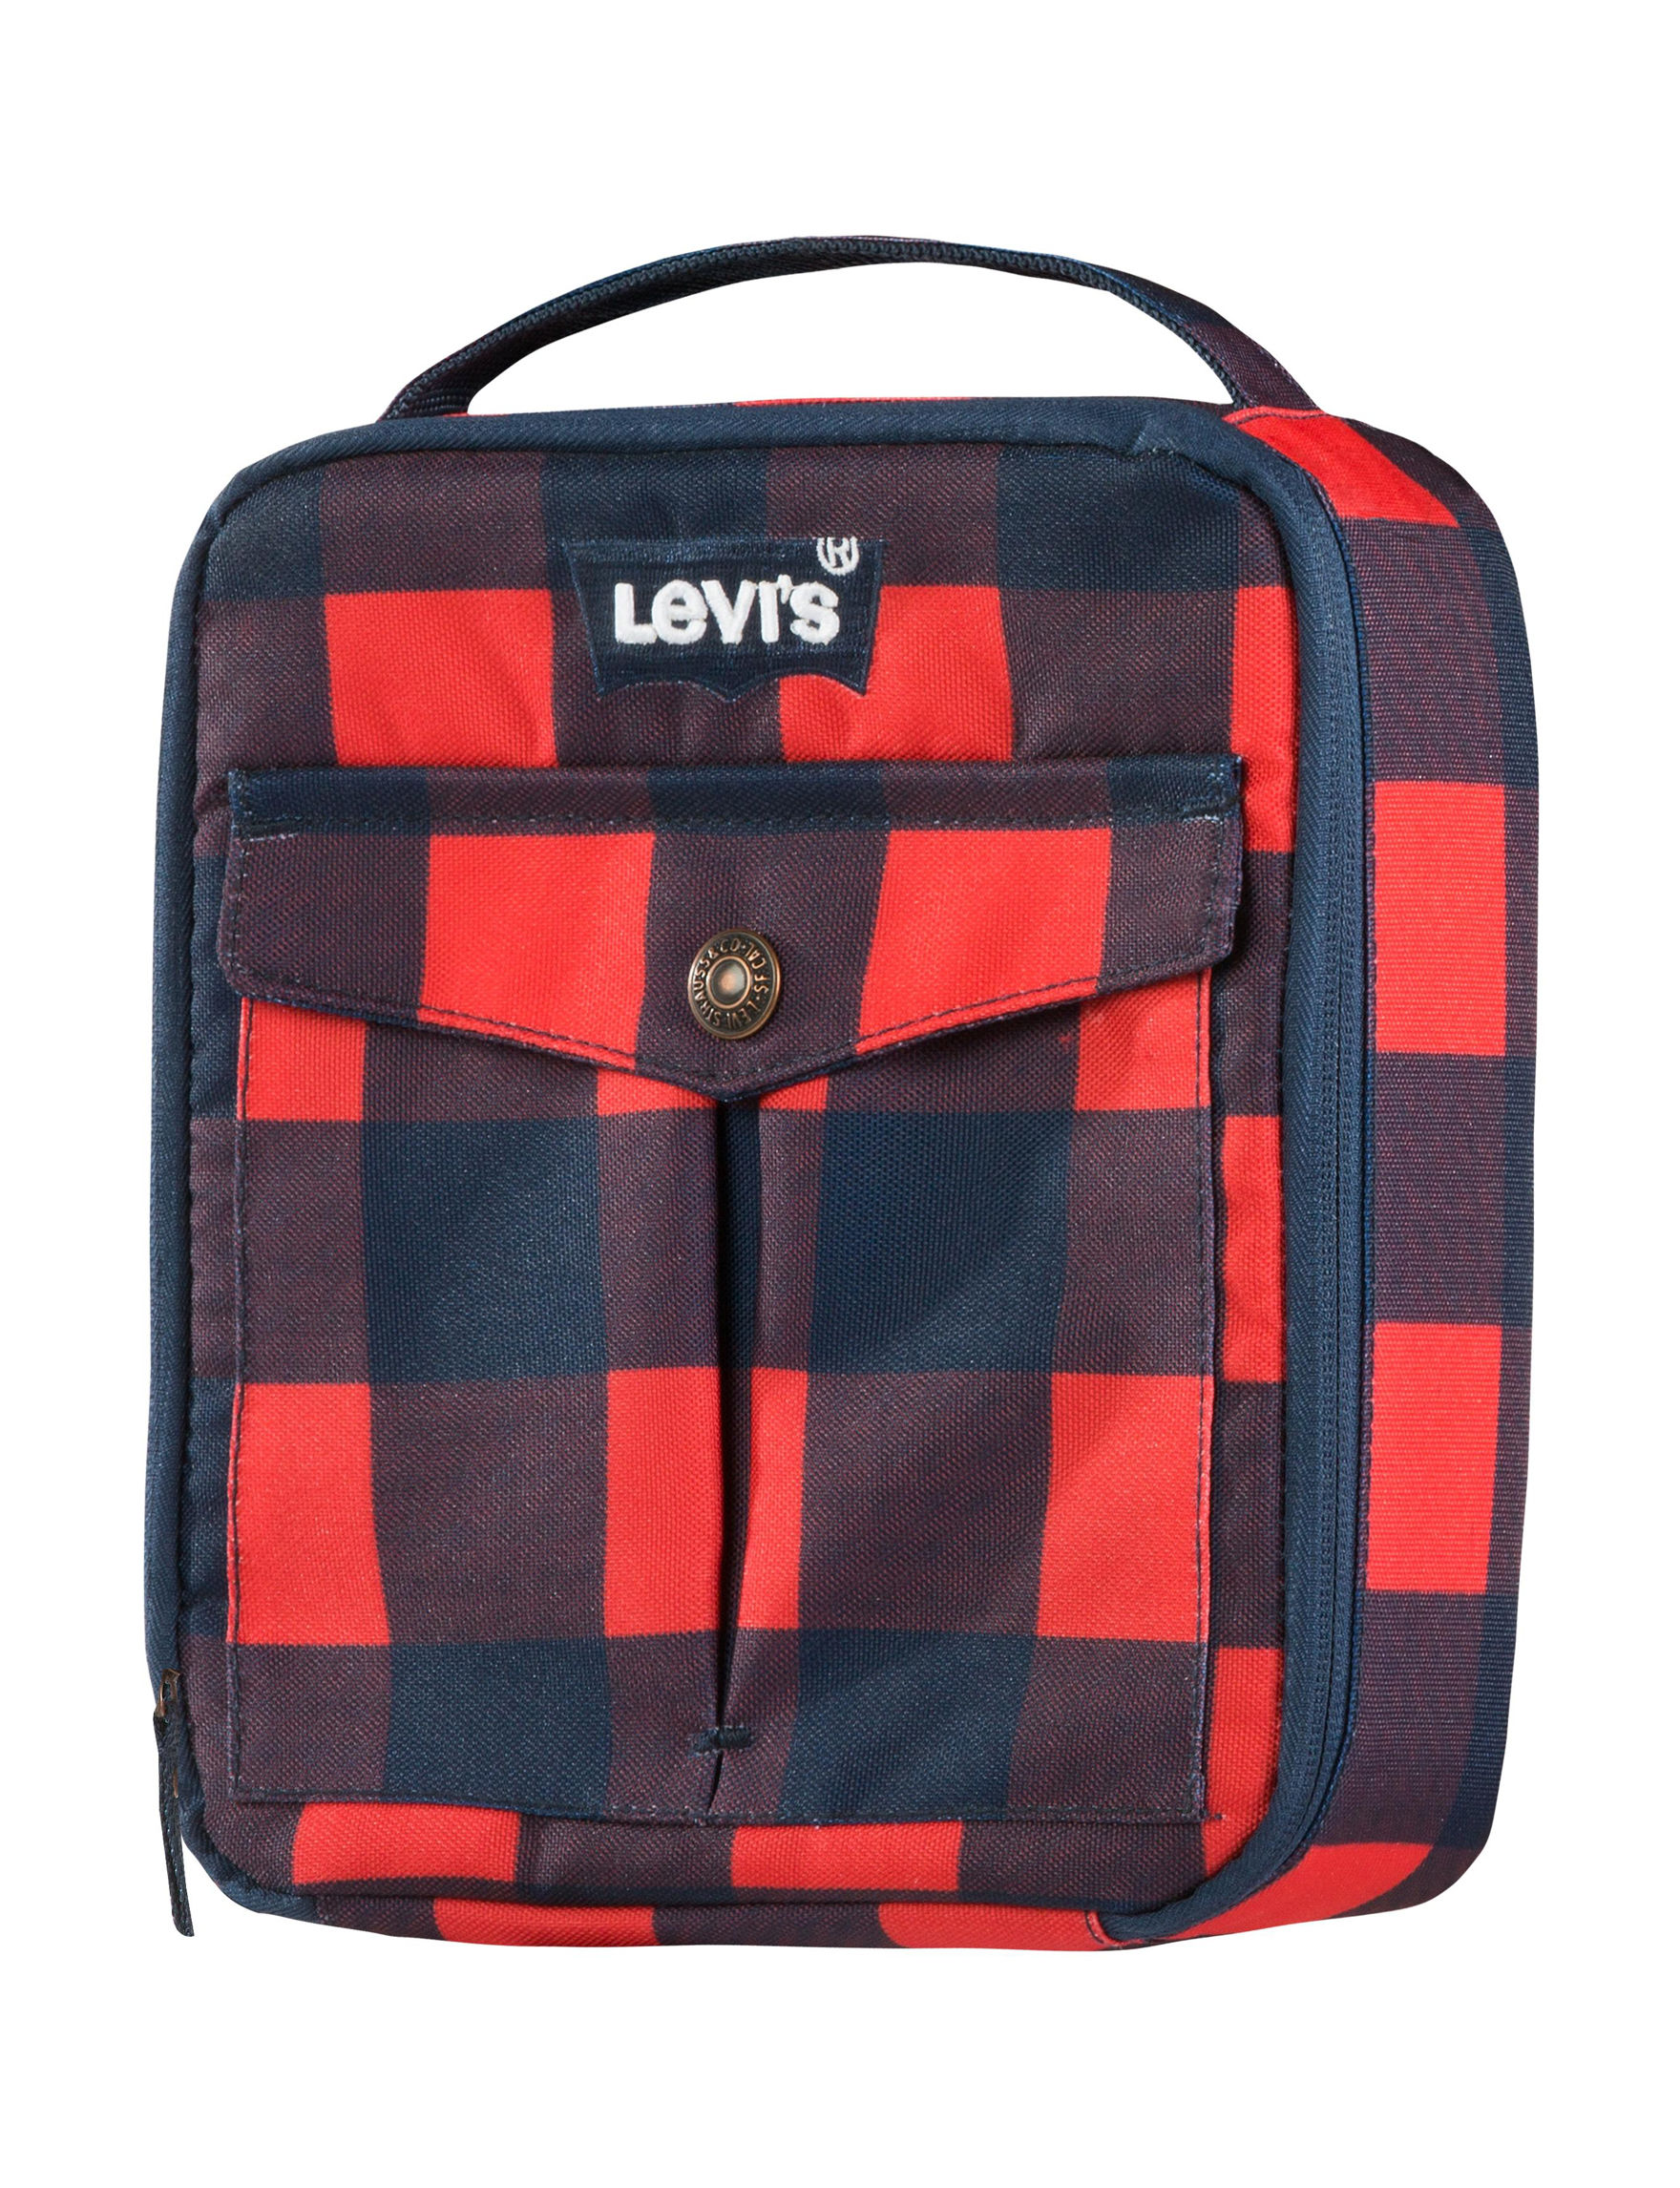 Levi's Blue Bookbags & Backpacks